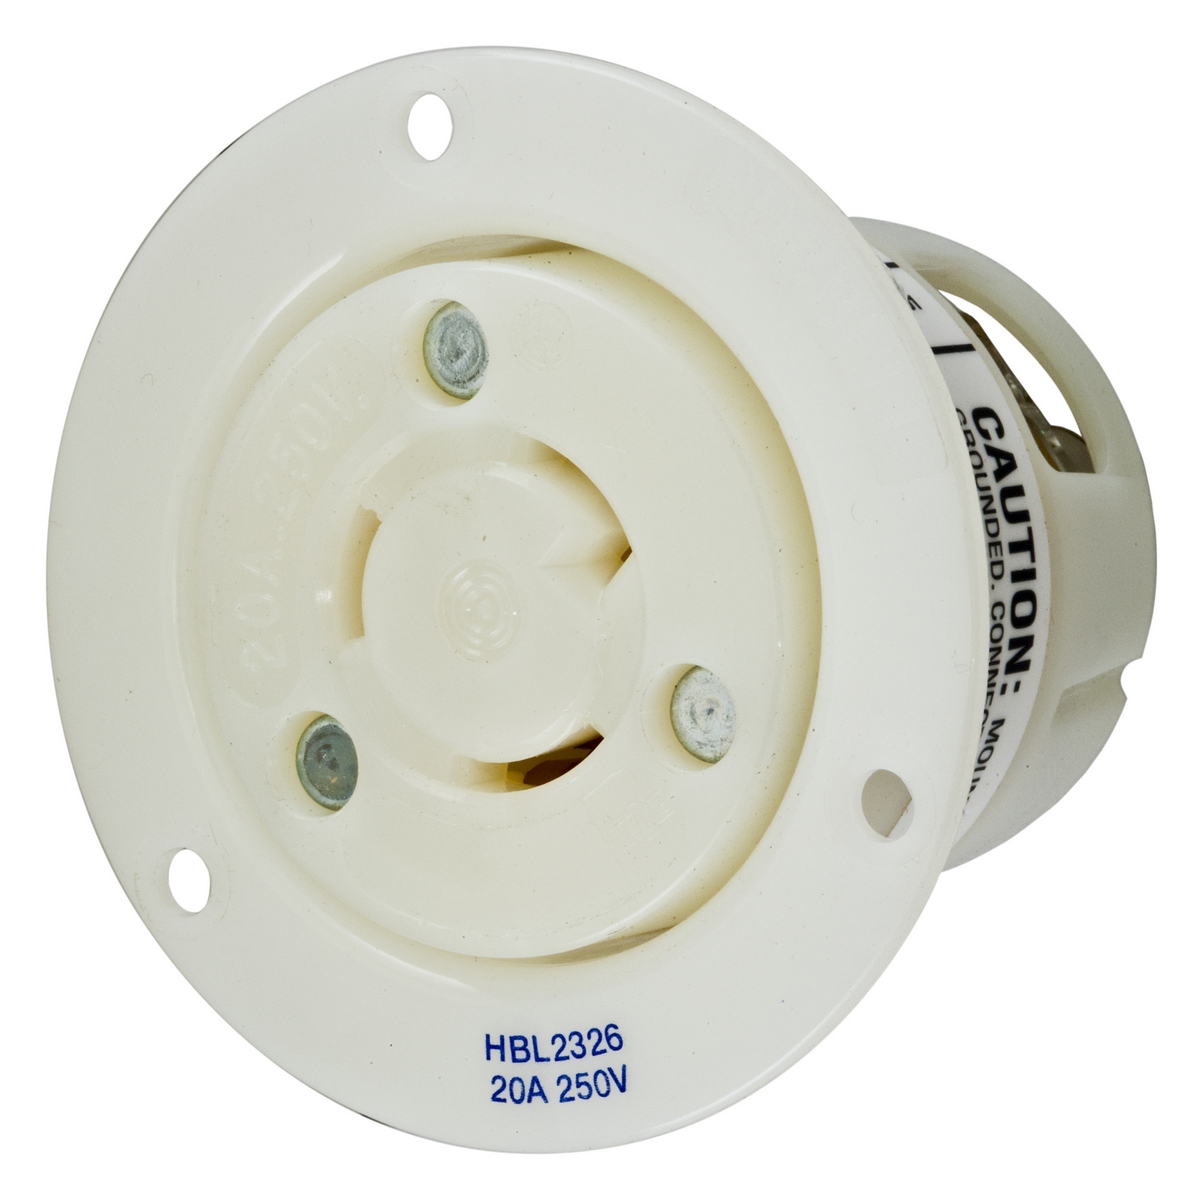 Hubbell HBL2326 20 Amp 250 Volt 2-Pole 3-Wire NEMA L6-20R White Locking Flanged Receptacle